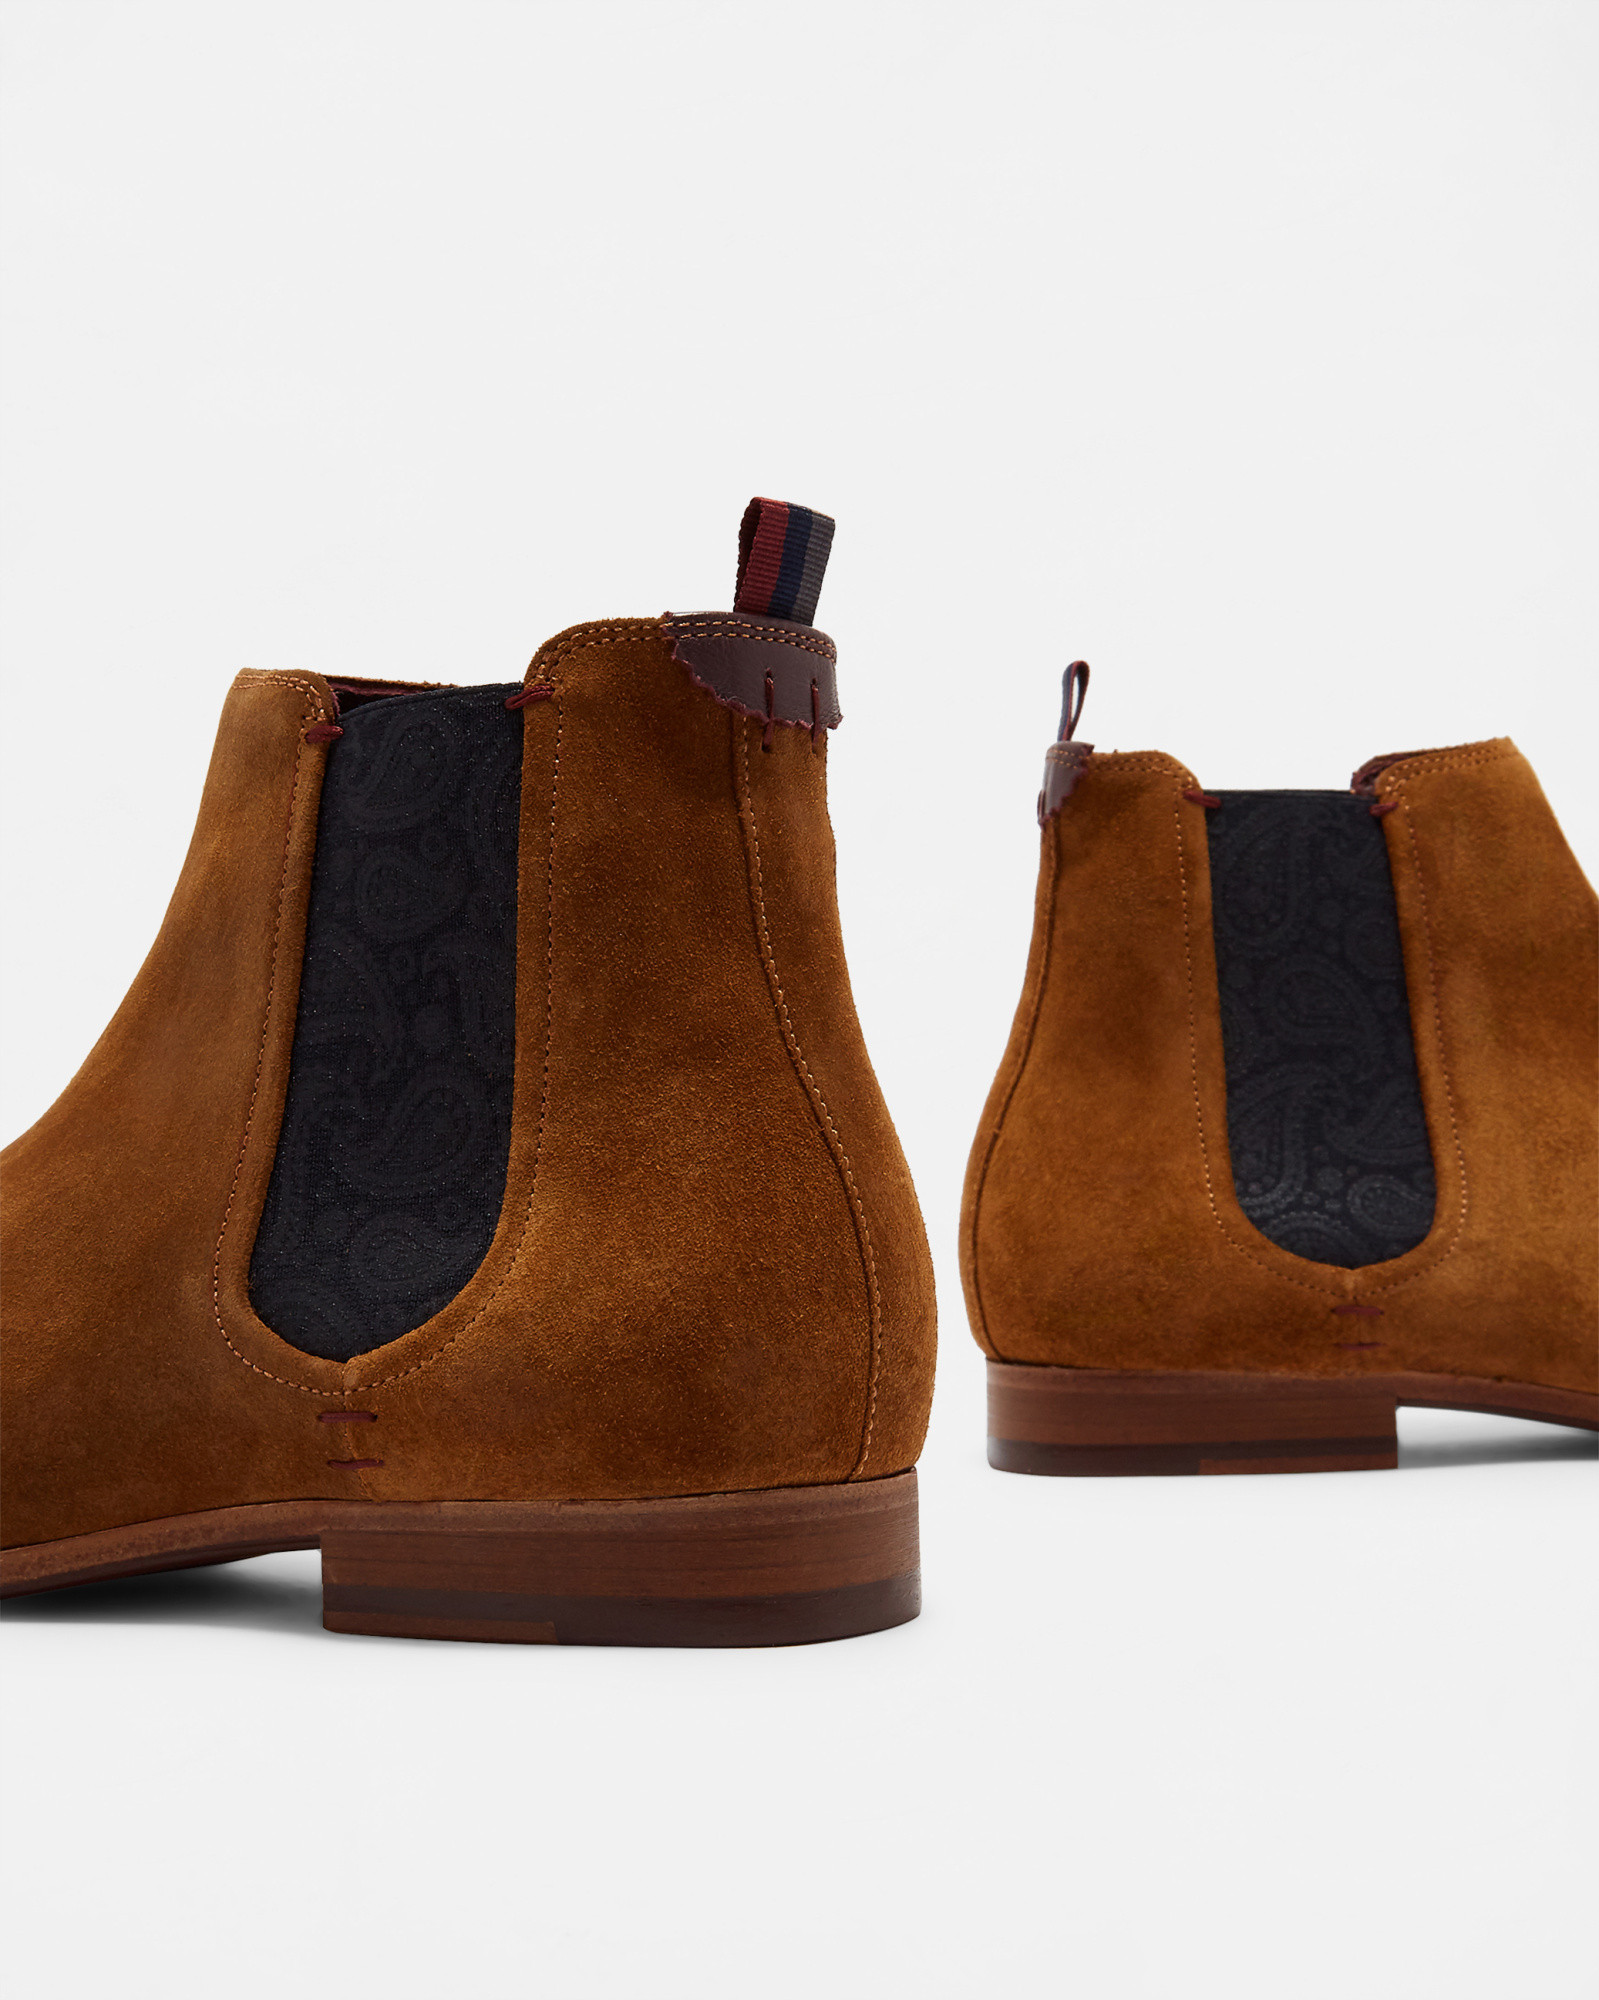 SALDOR Suede Chelsea boots by Ted Baker